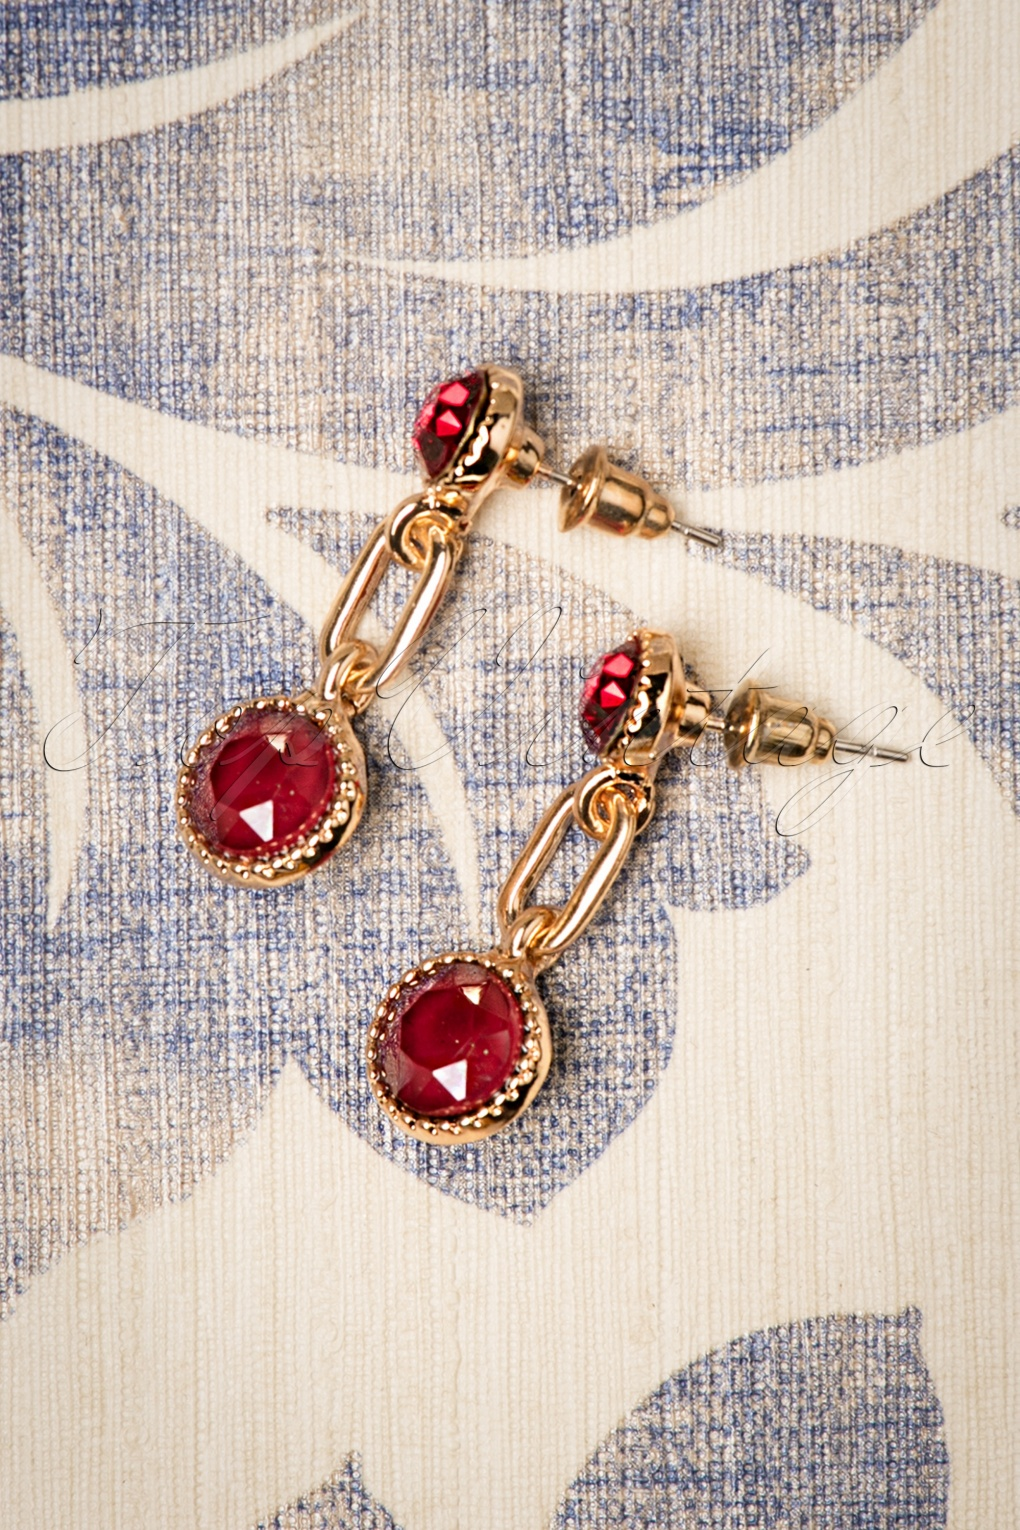 50s Jewelry: Earrings, Necklace, Brooch, Bracelet 50s Classic Earrings in Royal Red and Gold £6.02 AT vintagedancer.com